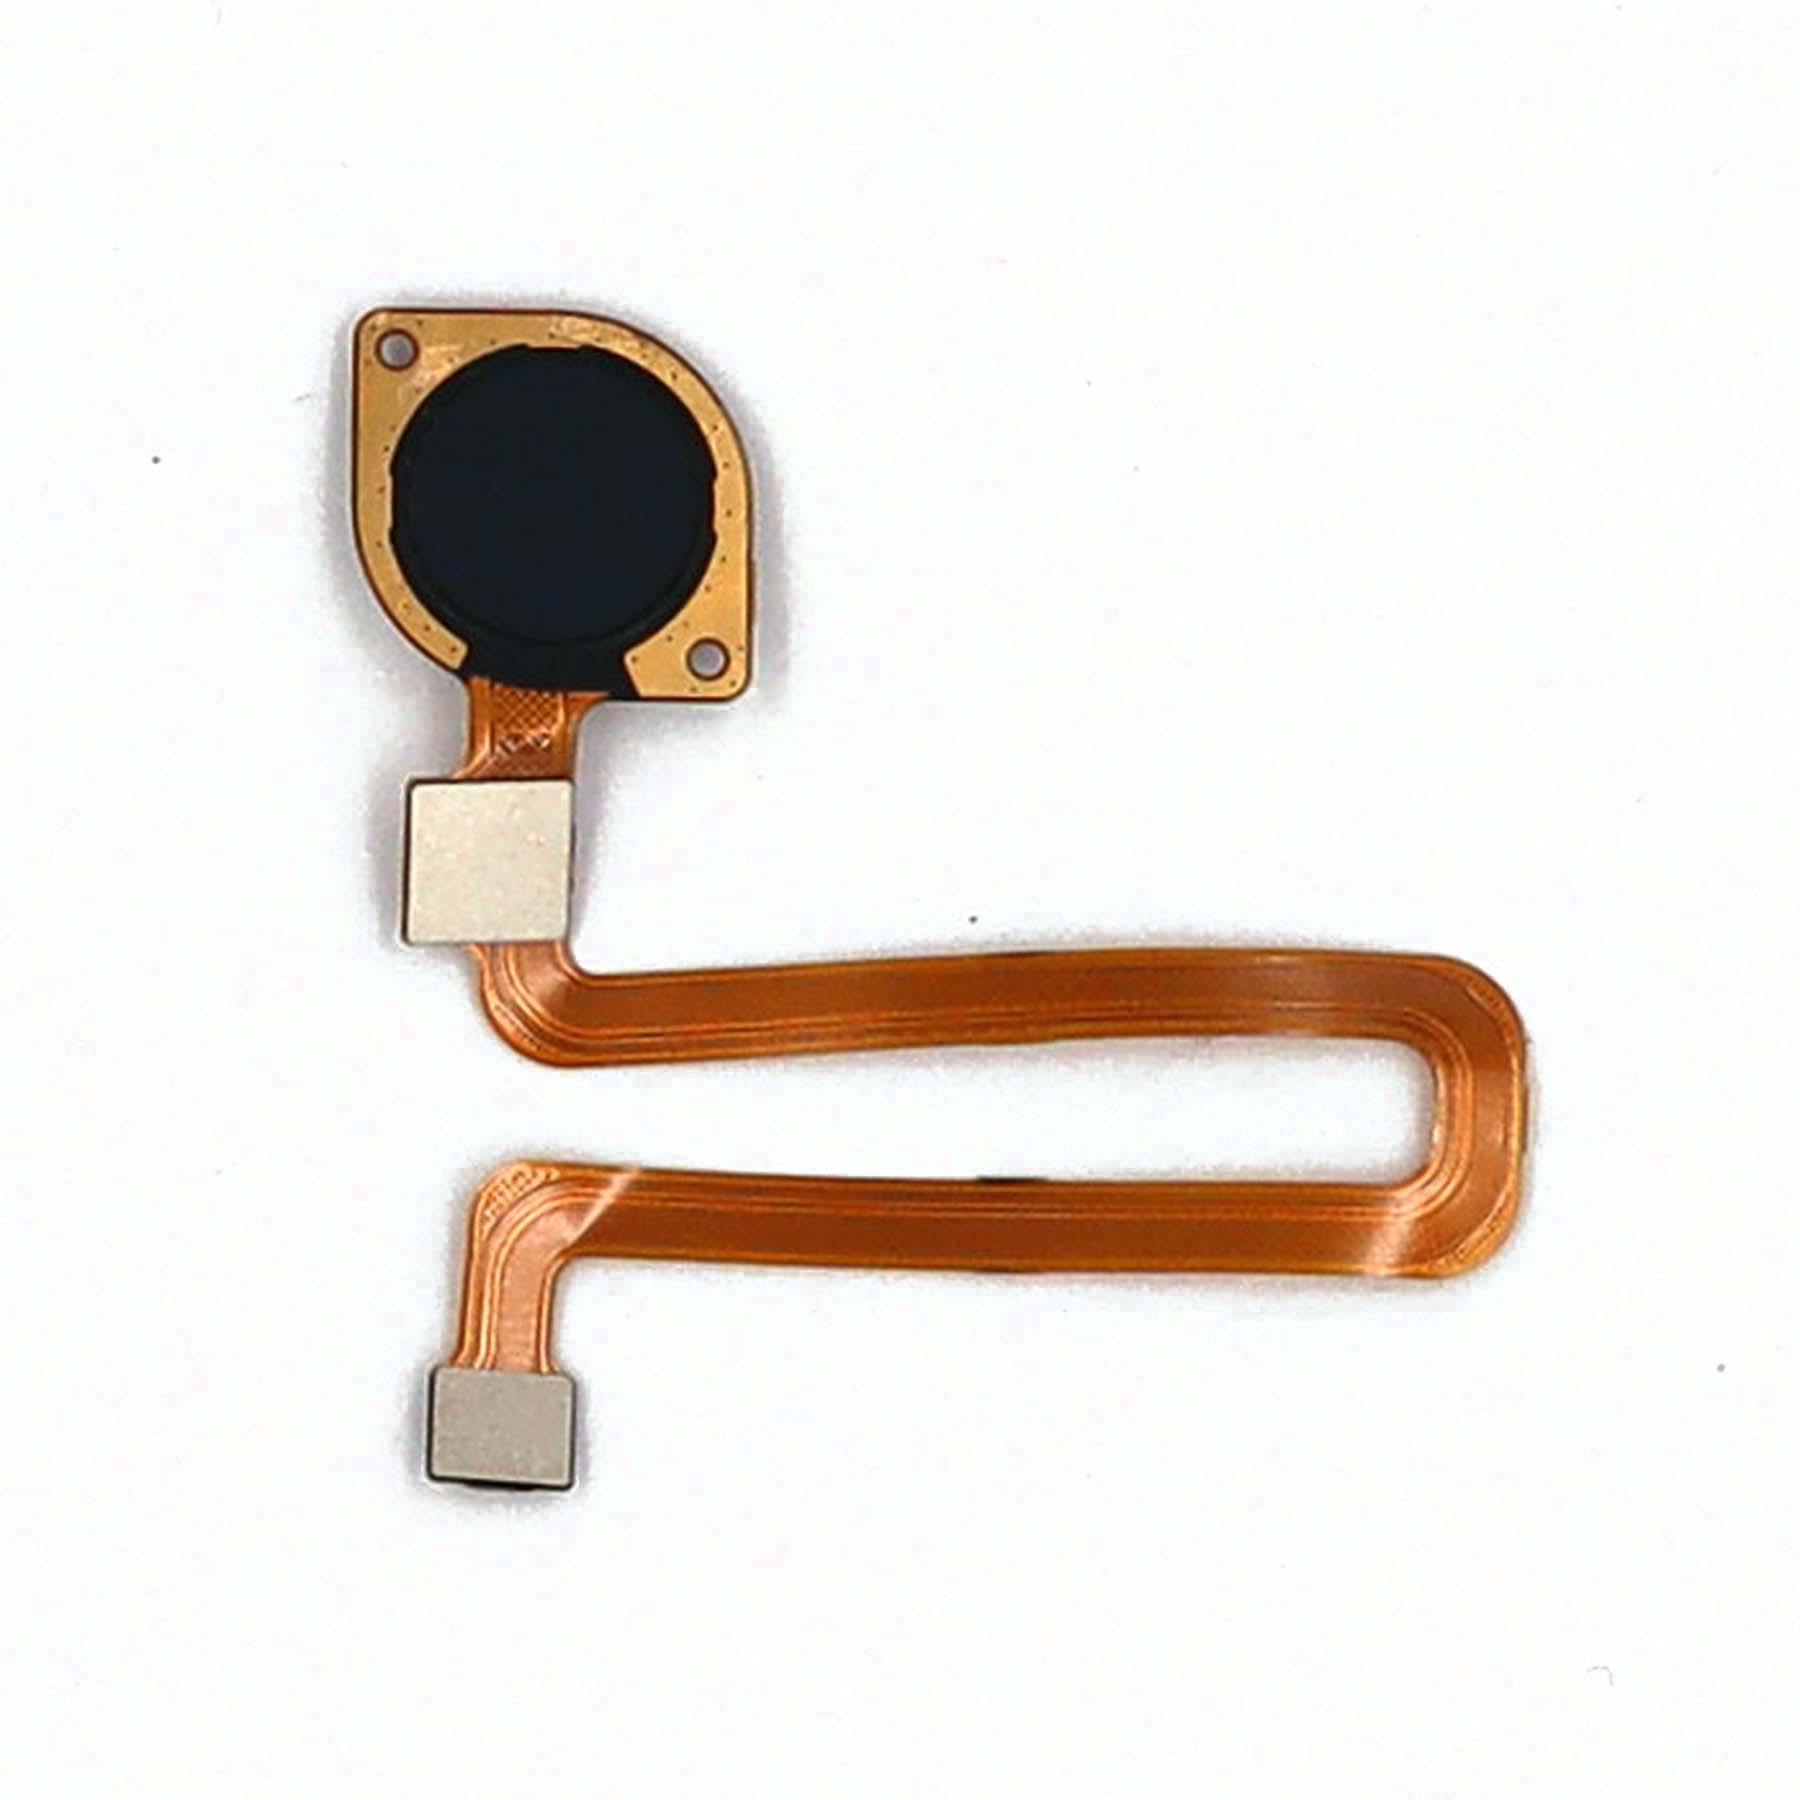 Antenna Connector Flex Cable for Samsung Galaxy S3 i9300